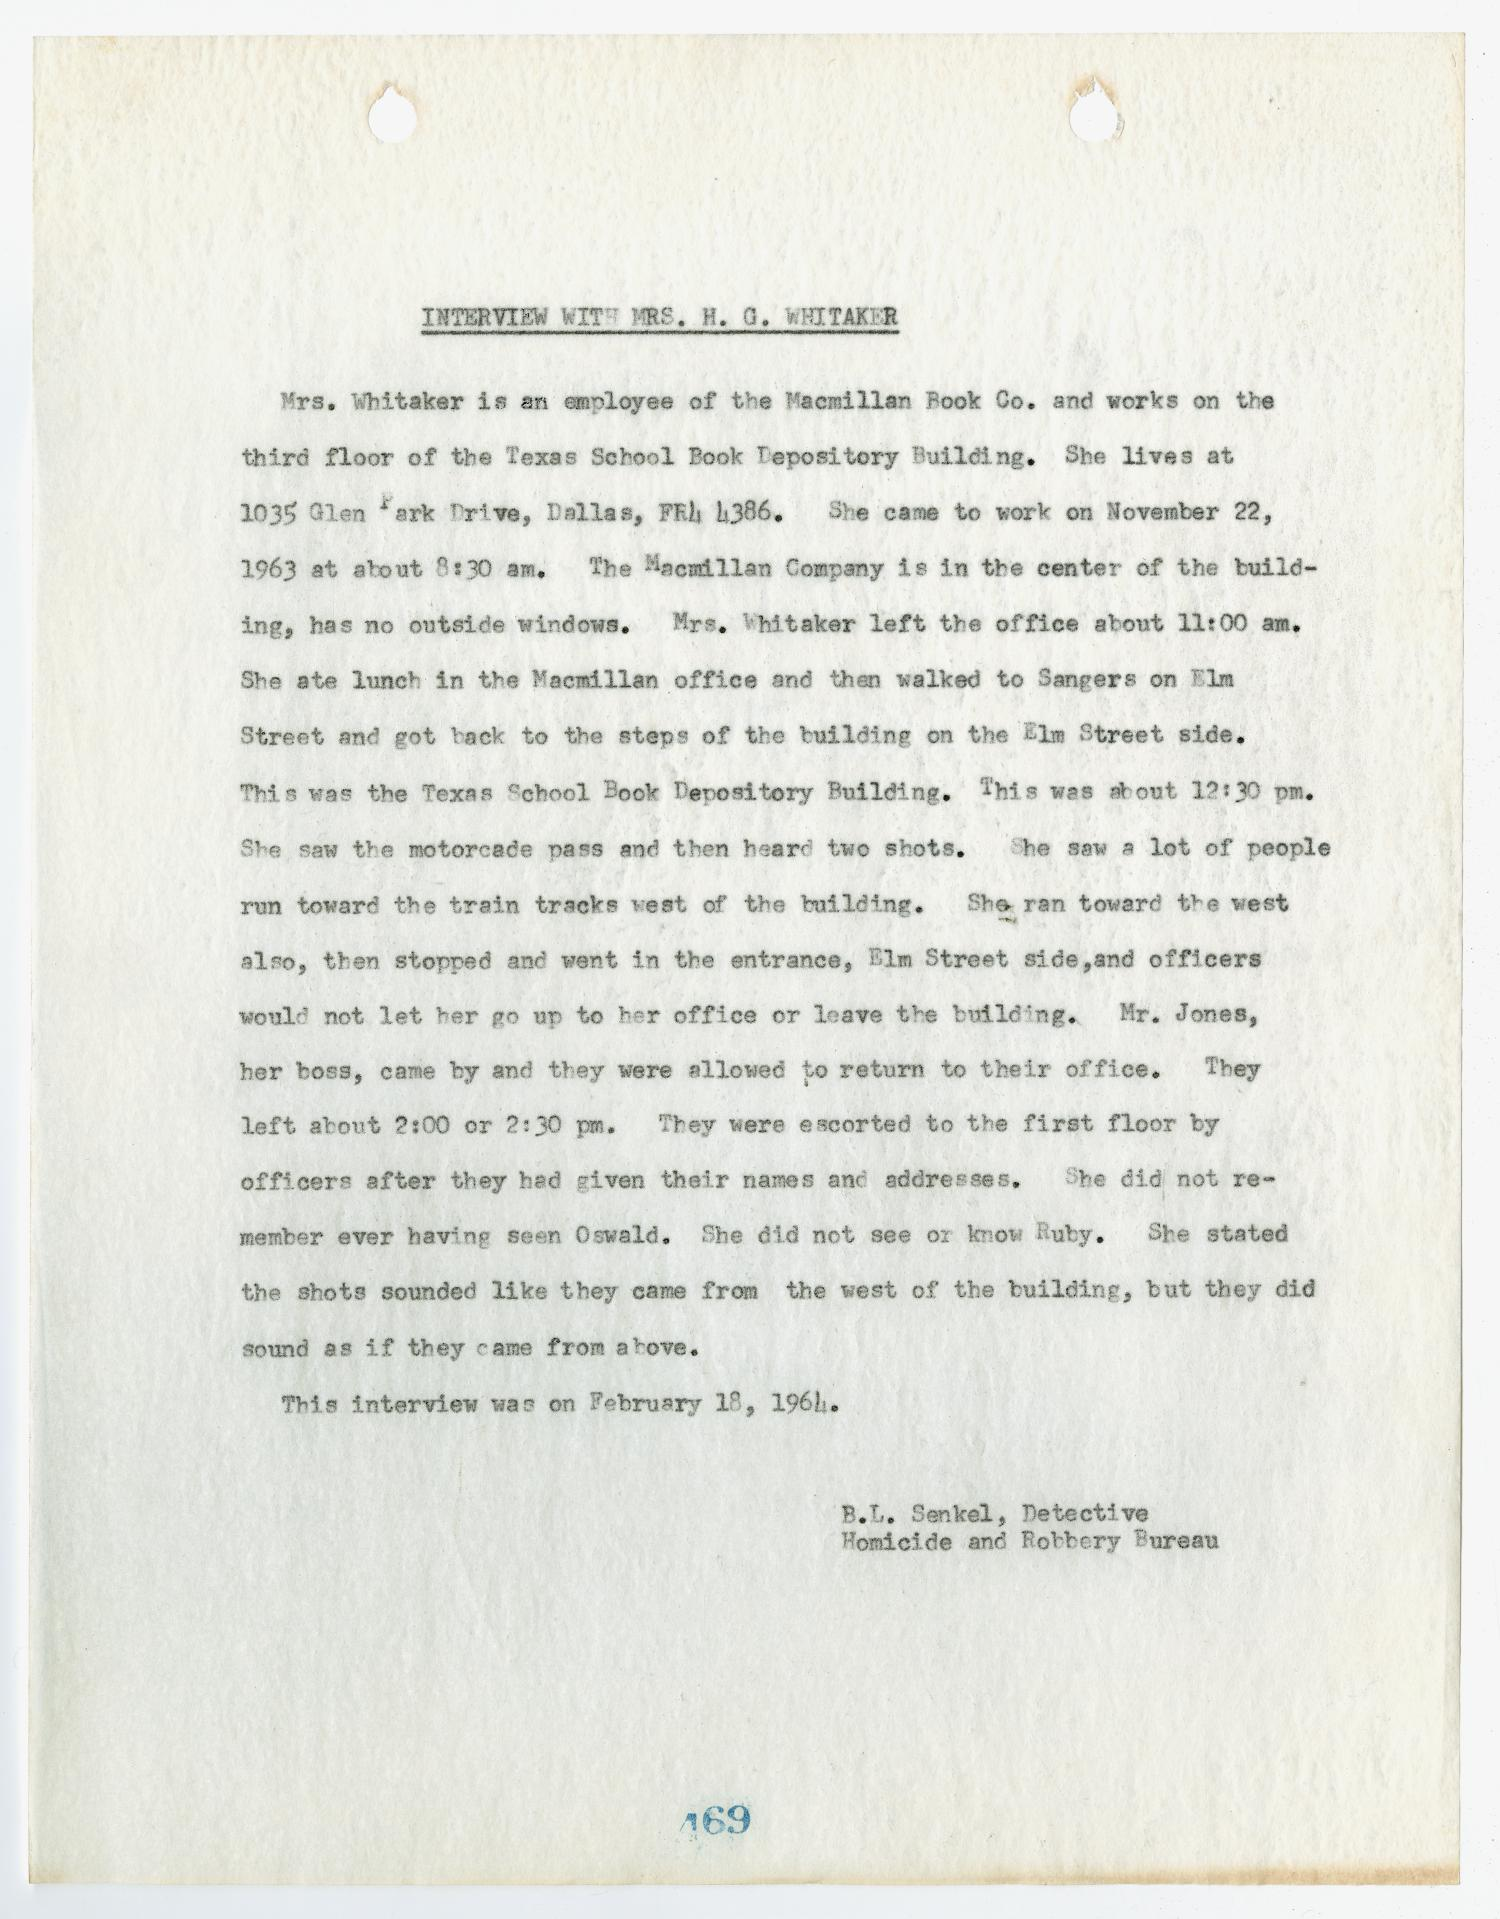 [Report by B. L. Senkel, concerning an interview with Mrs. H. G. Whitaker #1]                                                                                                      [Sequence #]: 1 of 2